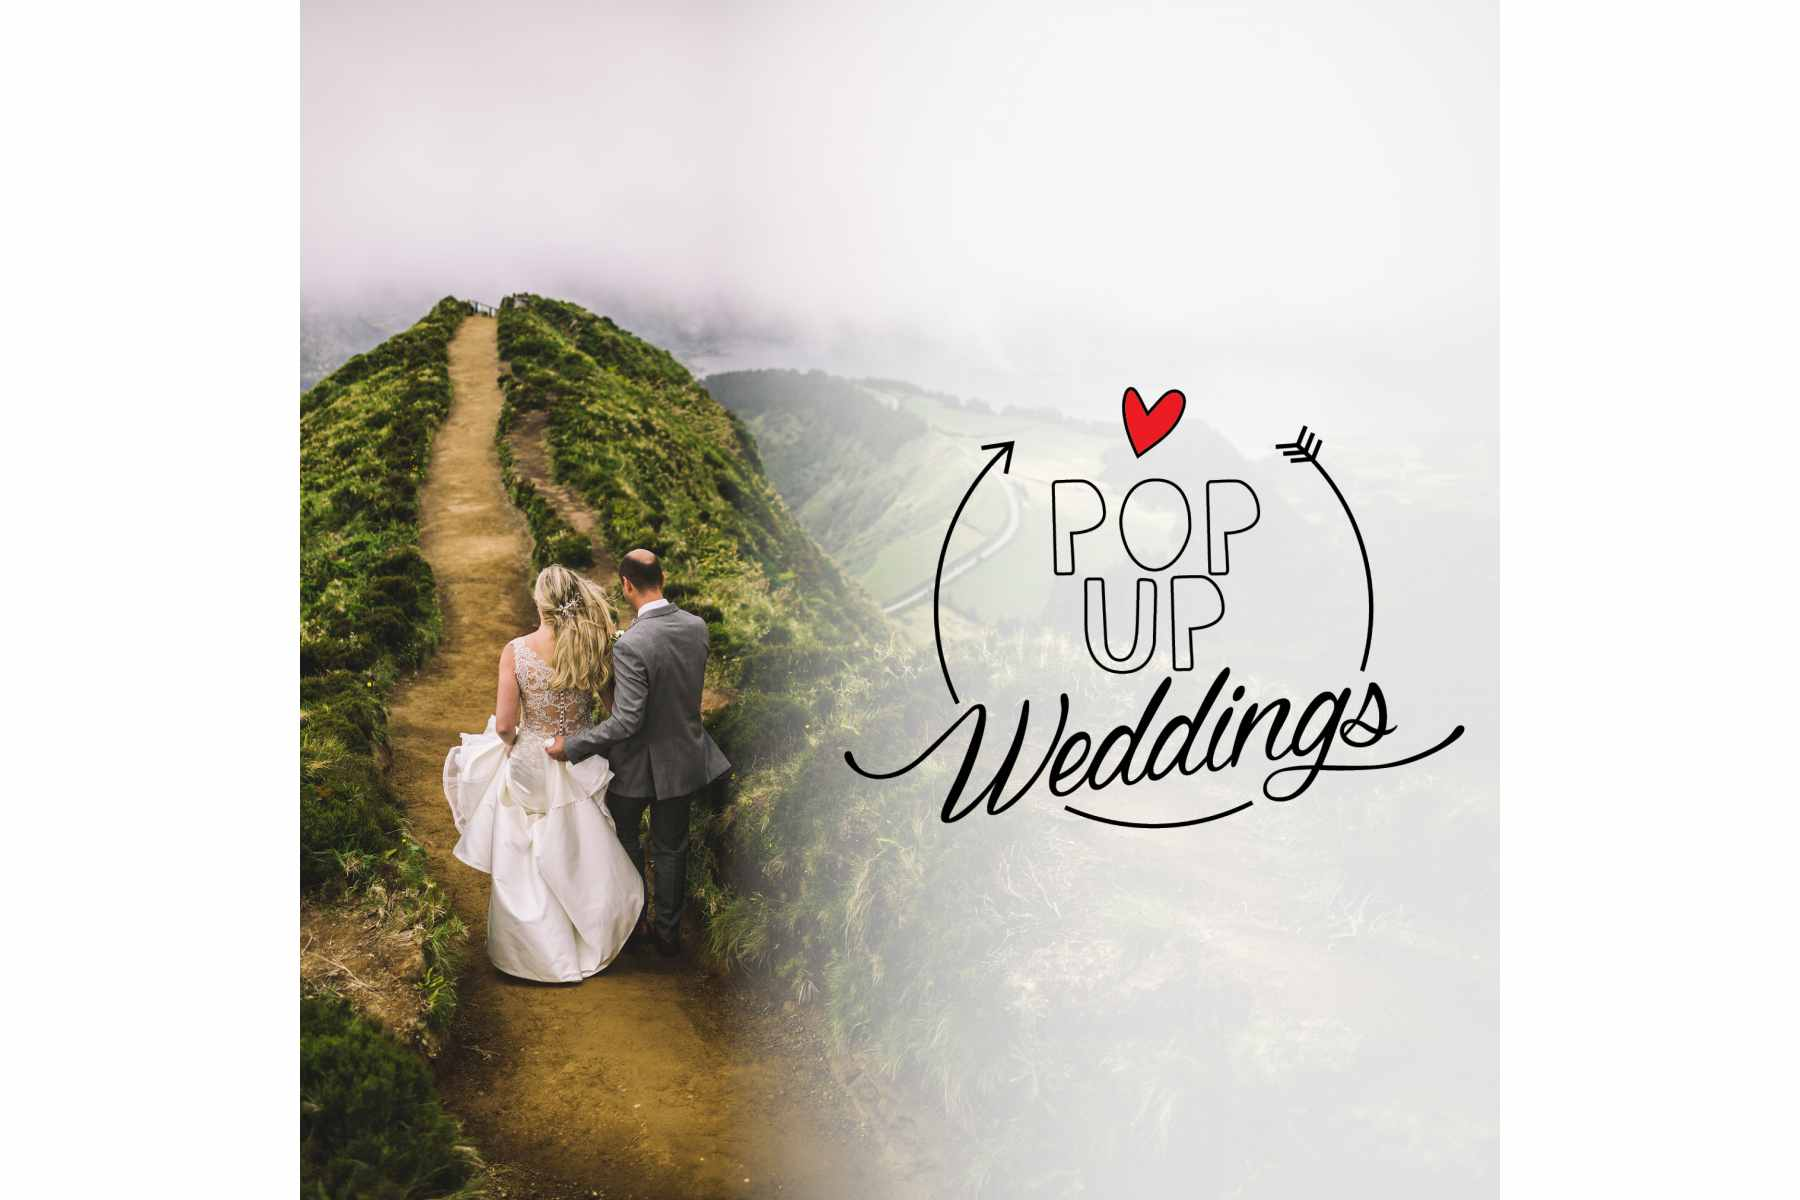 POP UP Weddings Destinations